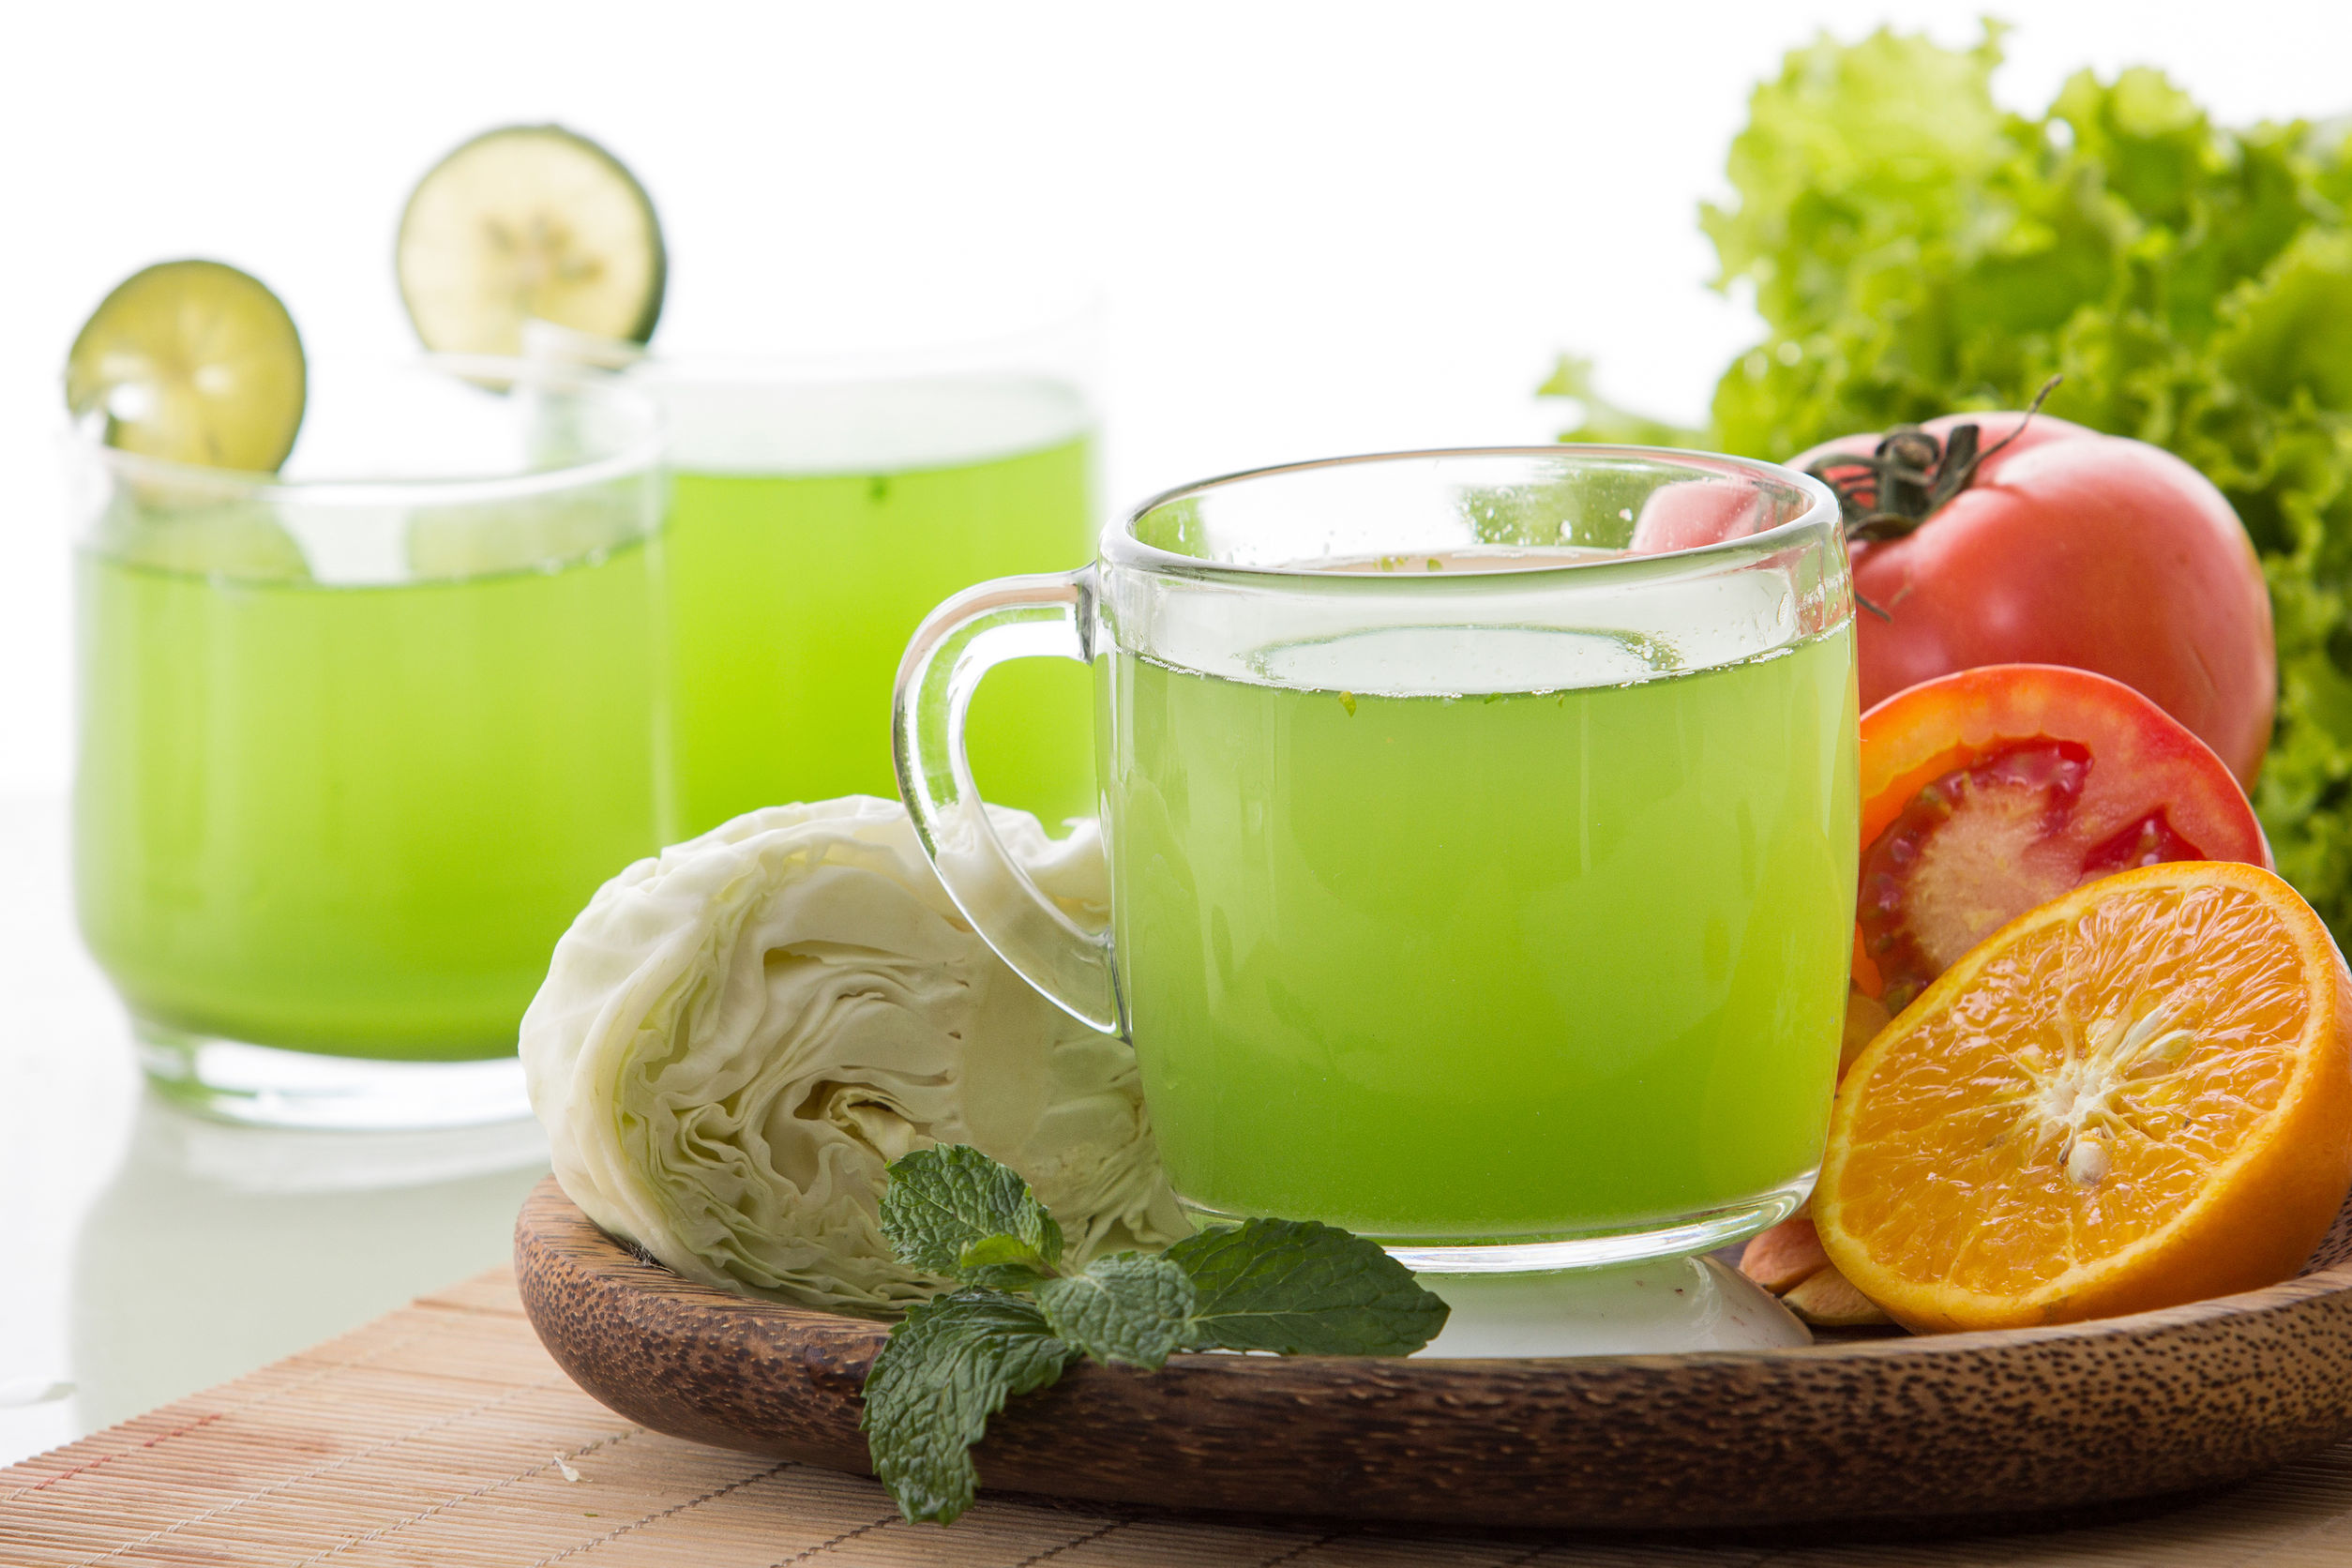 Image showing glass mugs filled with a clear delicious-looking pale green liquid, surrounded by fruits and vegetables indicating the ingredients you can include in a healthy juice drink, as described in this article on CALMERme.com